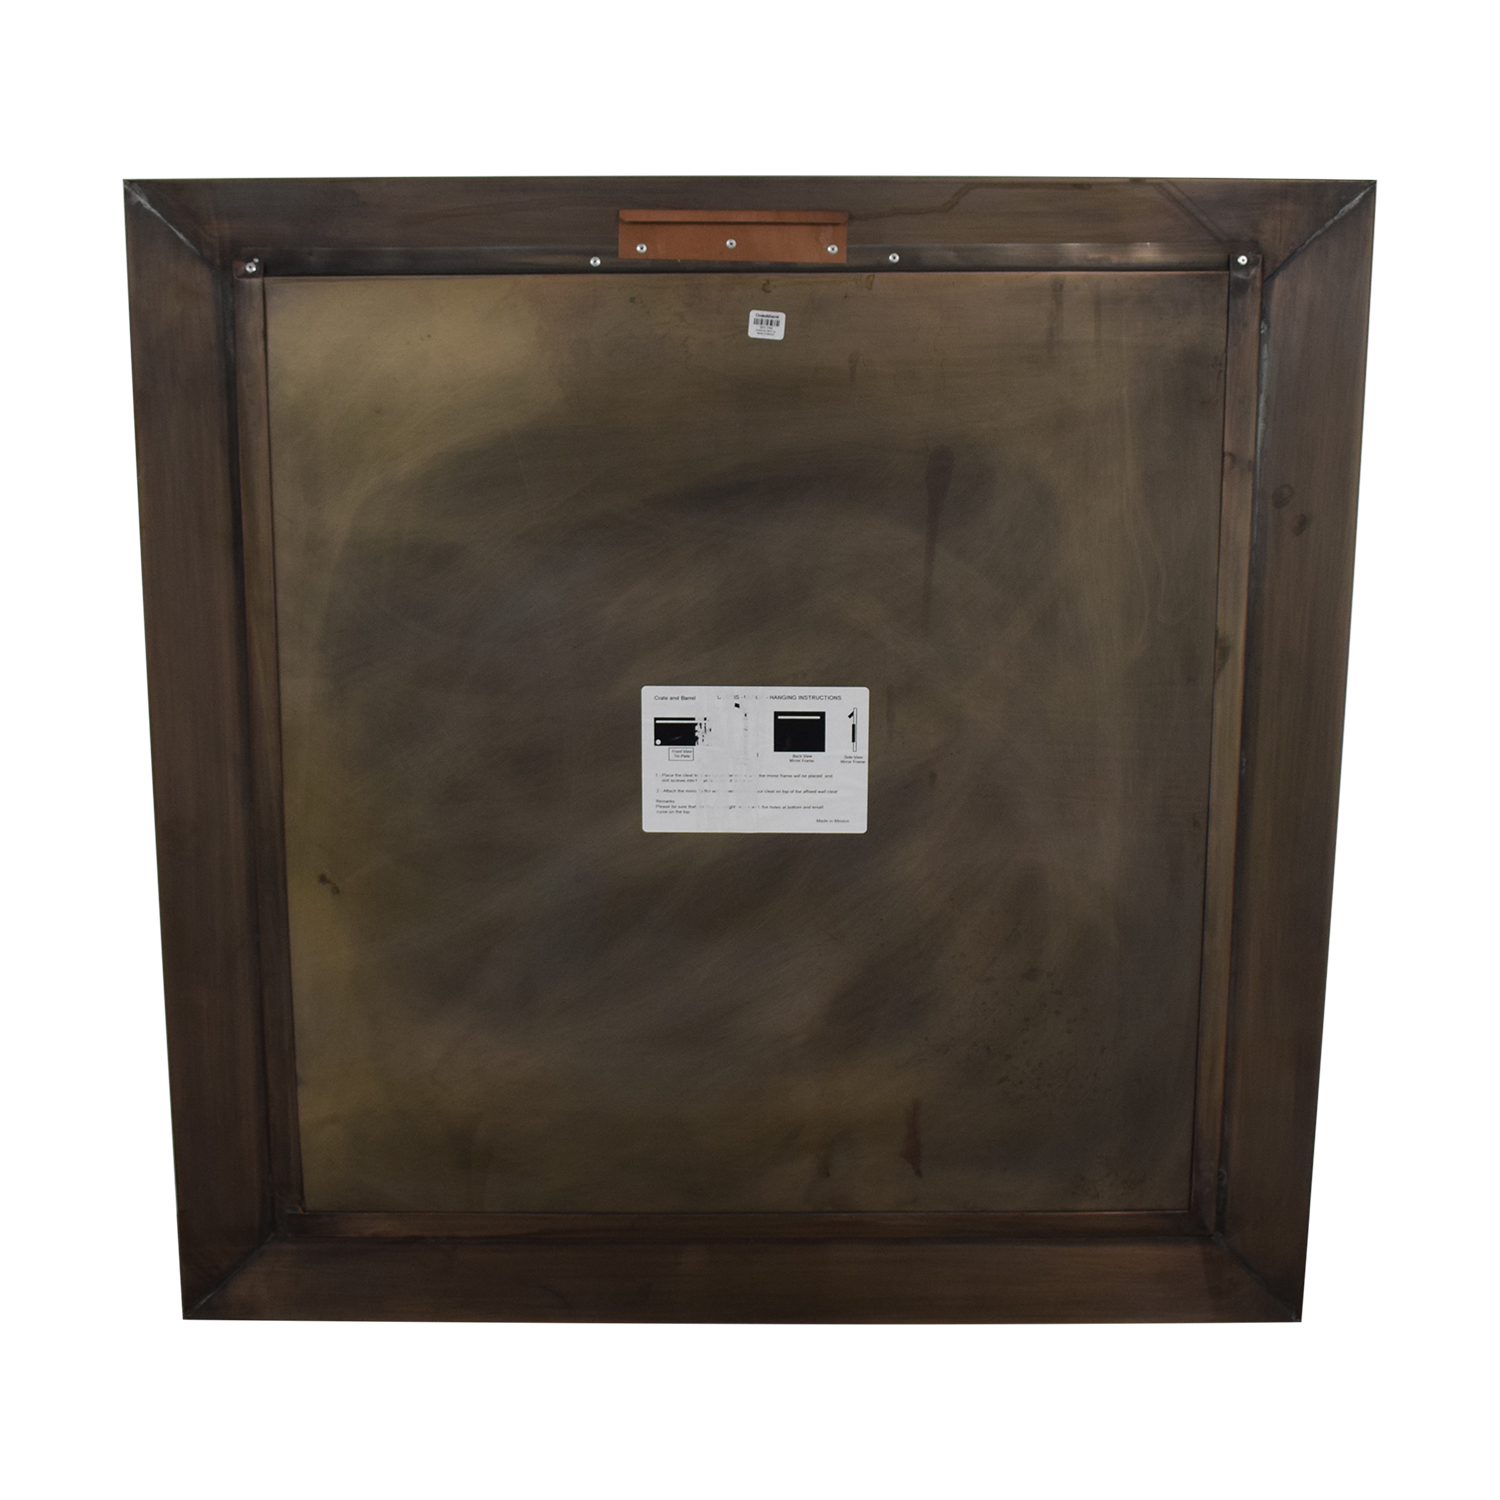 Crate & Barrel Crate & Barrel Dubois Square Wall Mirror on sale